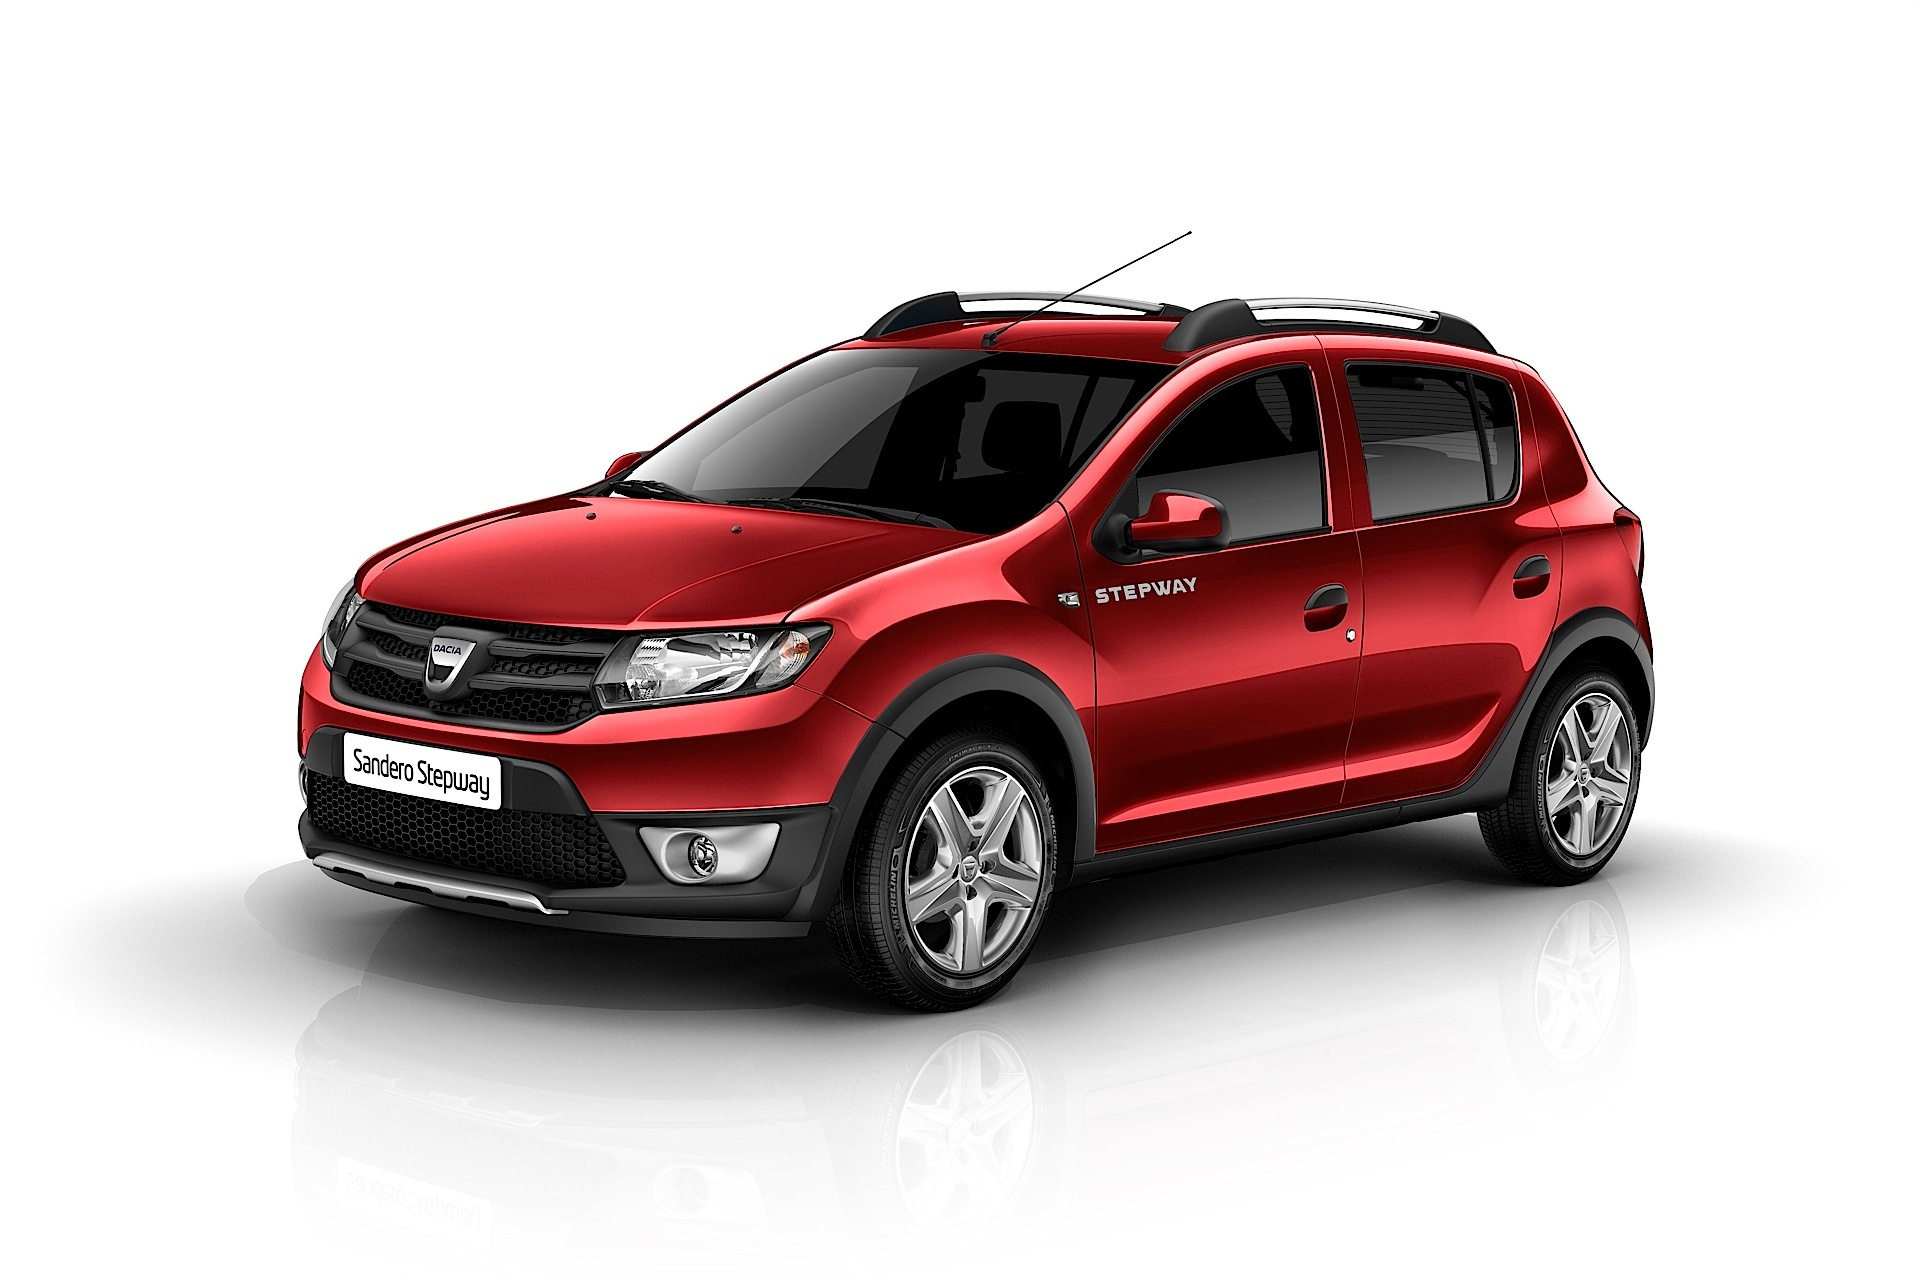 dacia sandero stepway 2 specs photos 2012 2013 2014 2015 2016 autoevolution. Black Bedroom Furniture Sets. Home Design Ideas